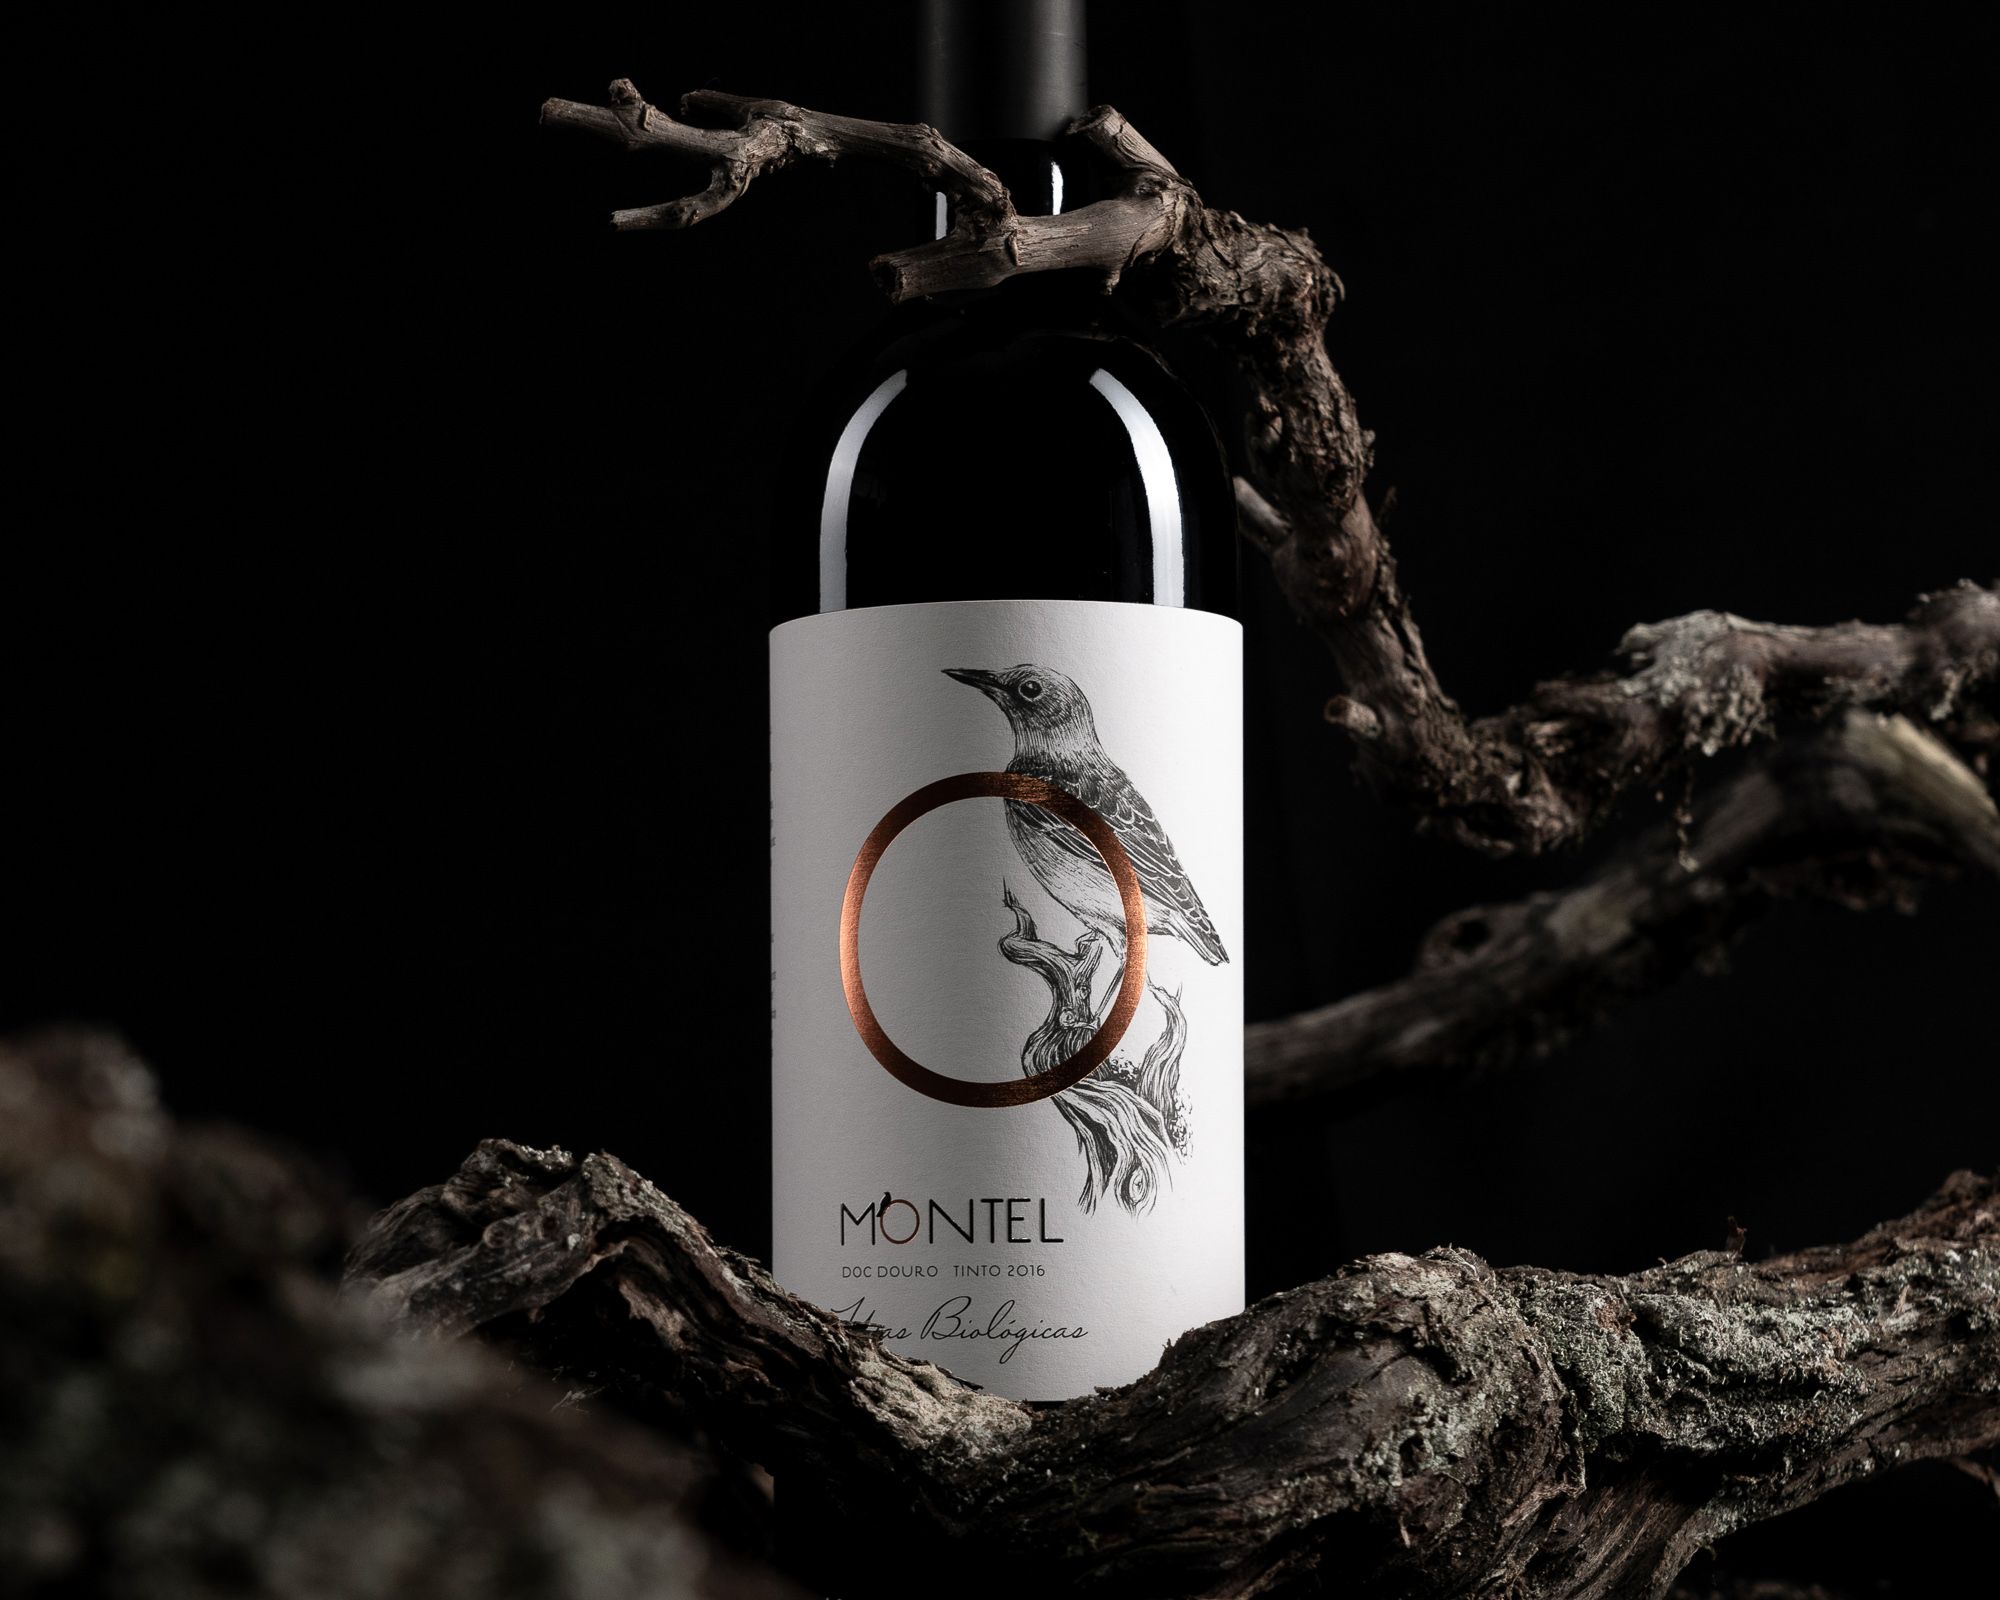 Vinco Studio Design Label for Montel Organic Wines